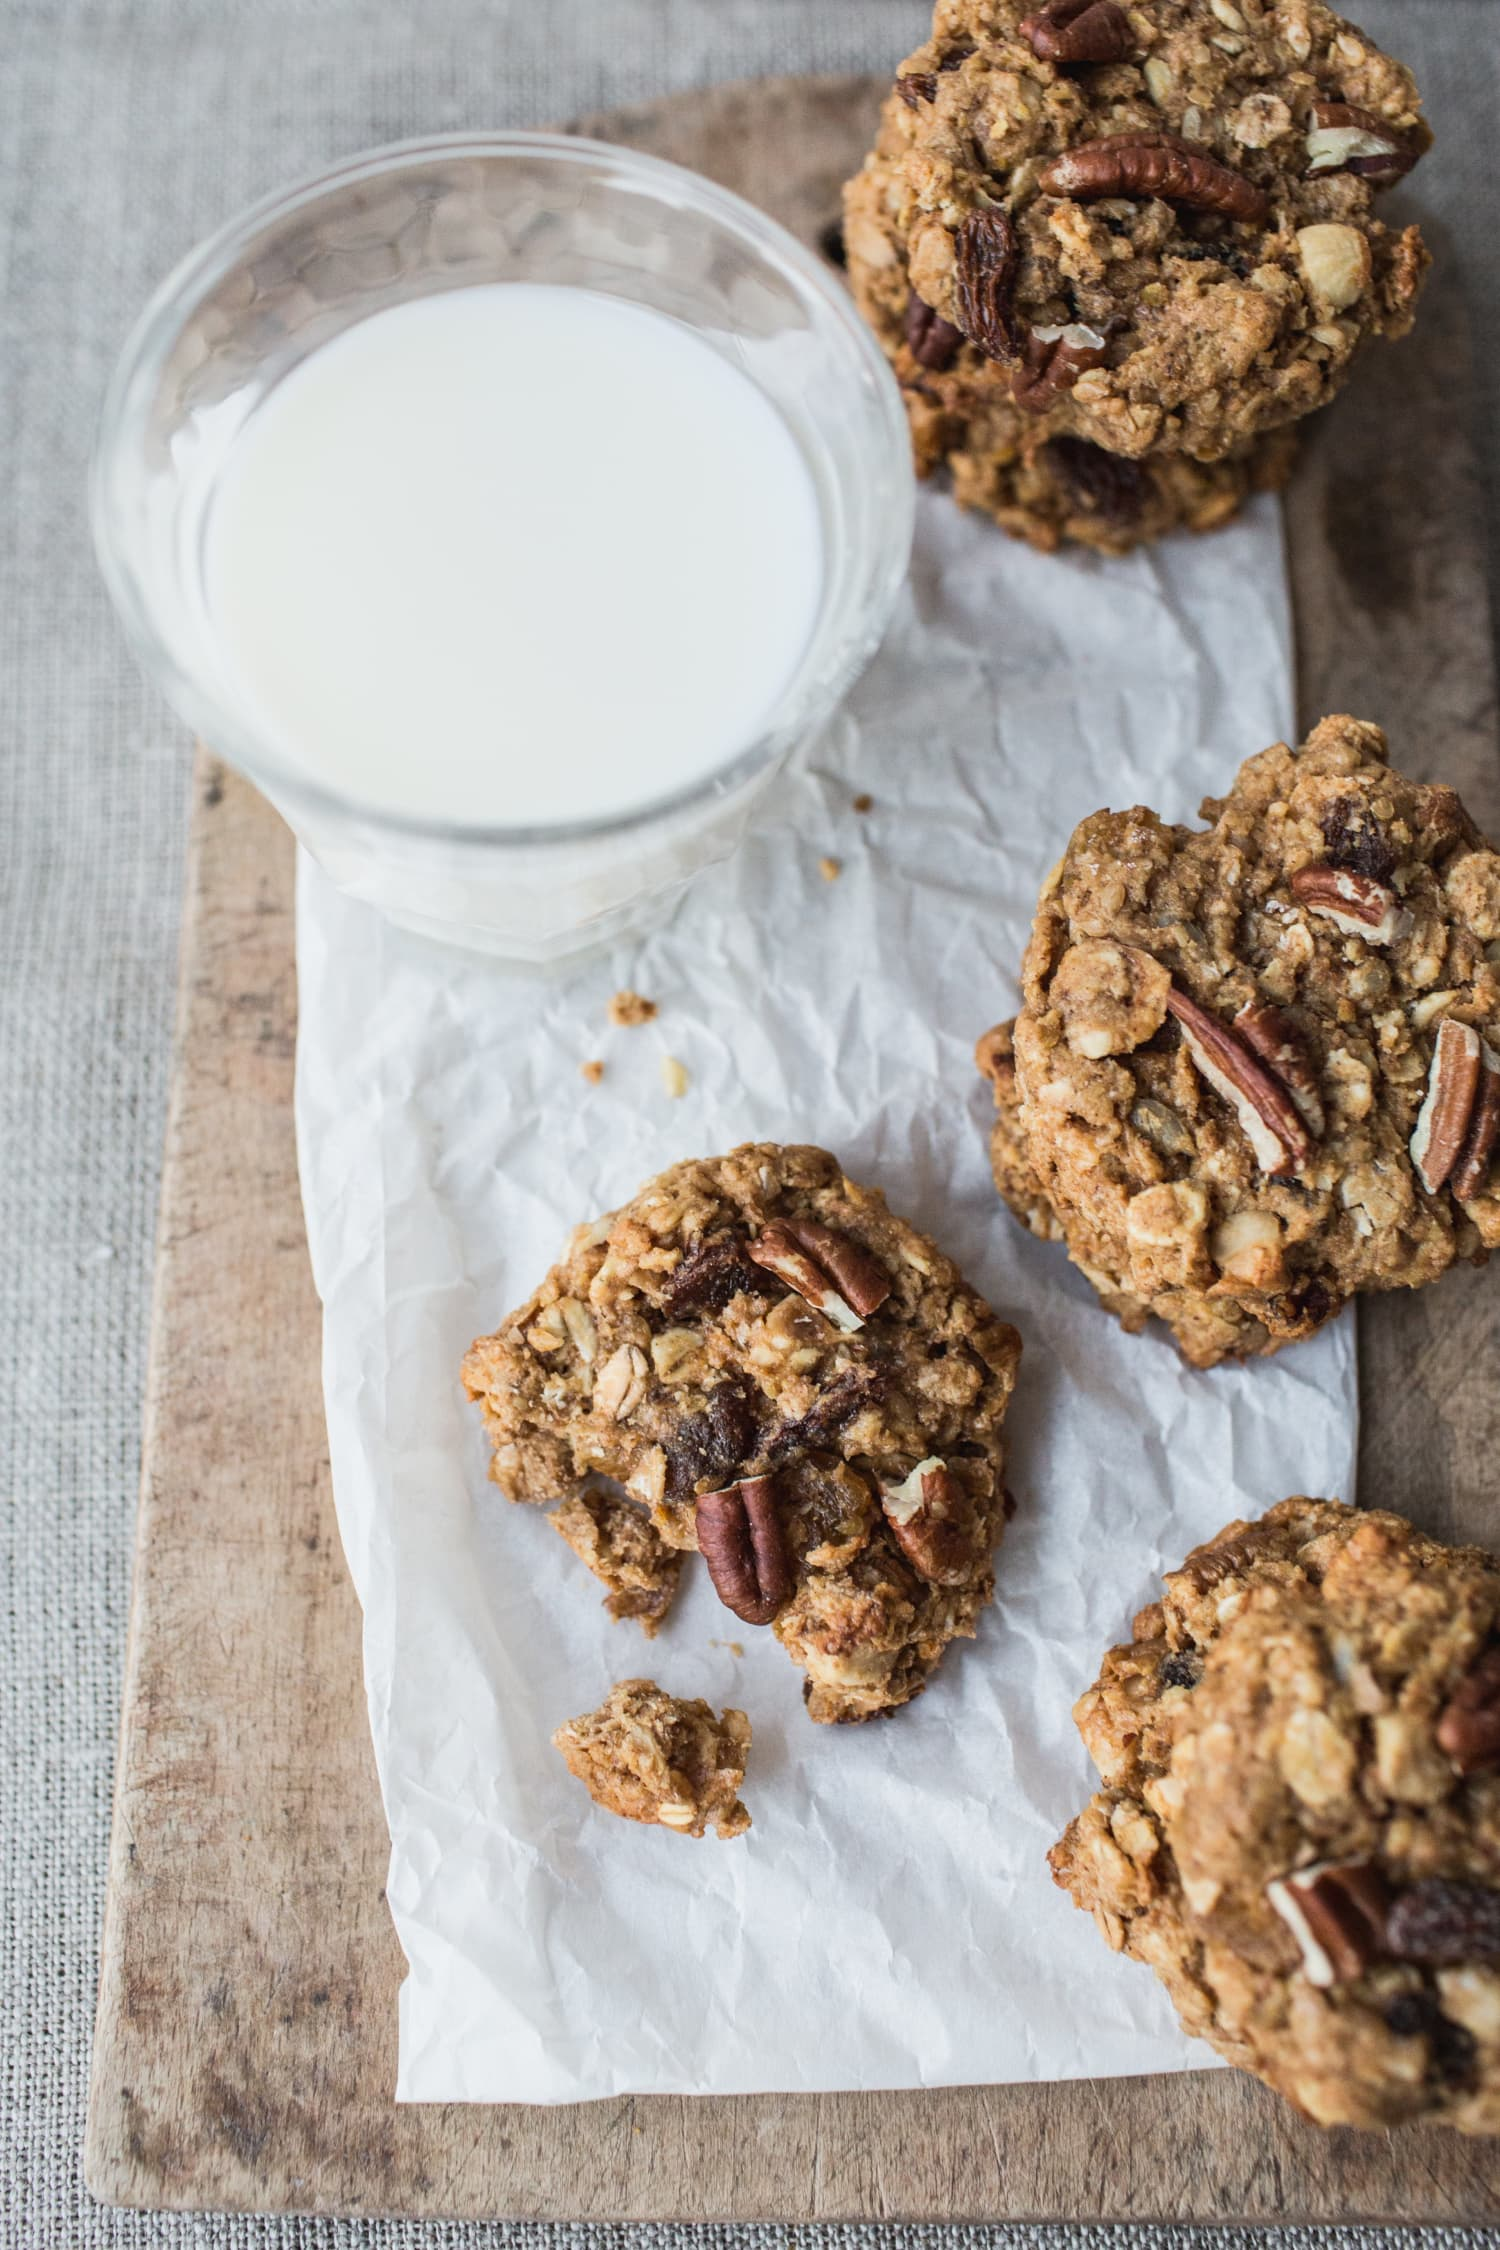 Muesli Cookies Are the Perfect Grab-and-Go Snack